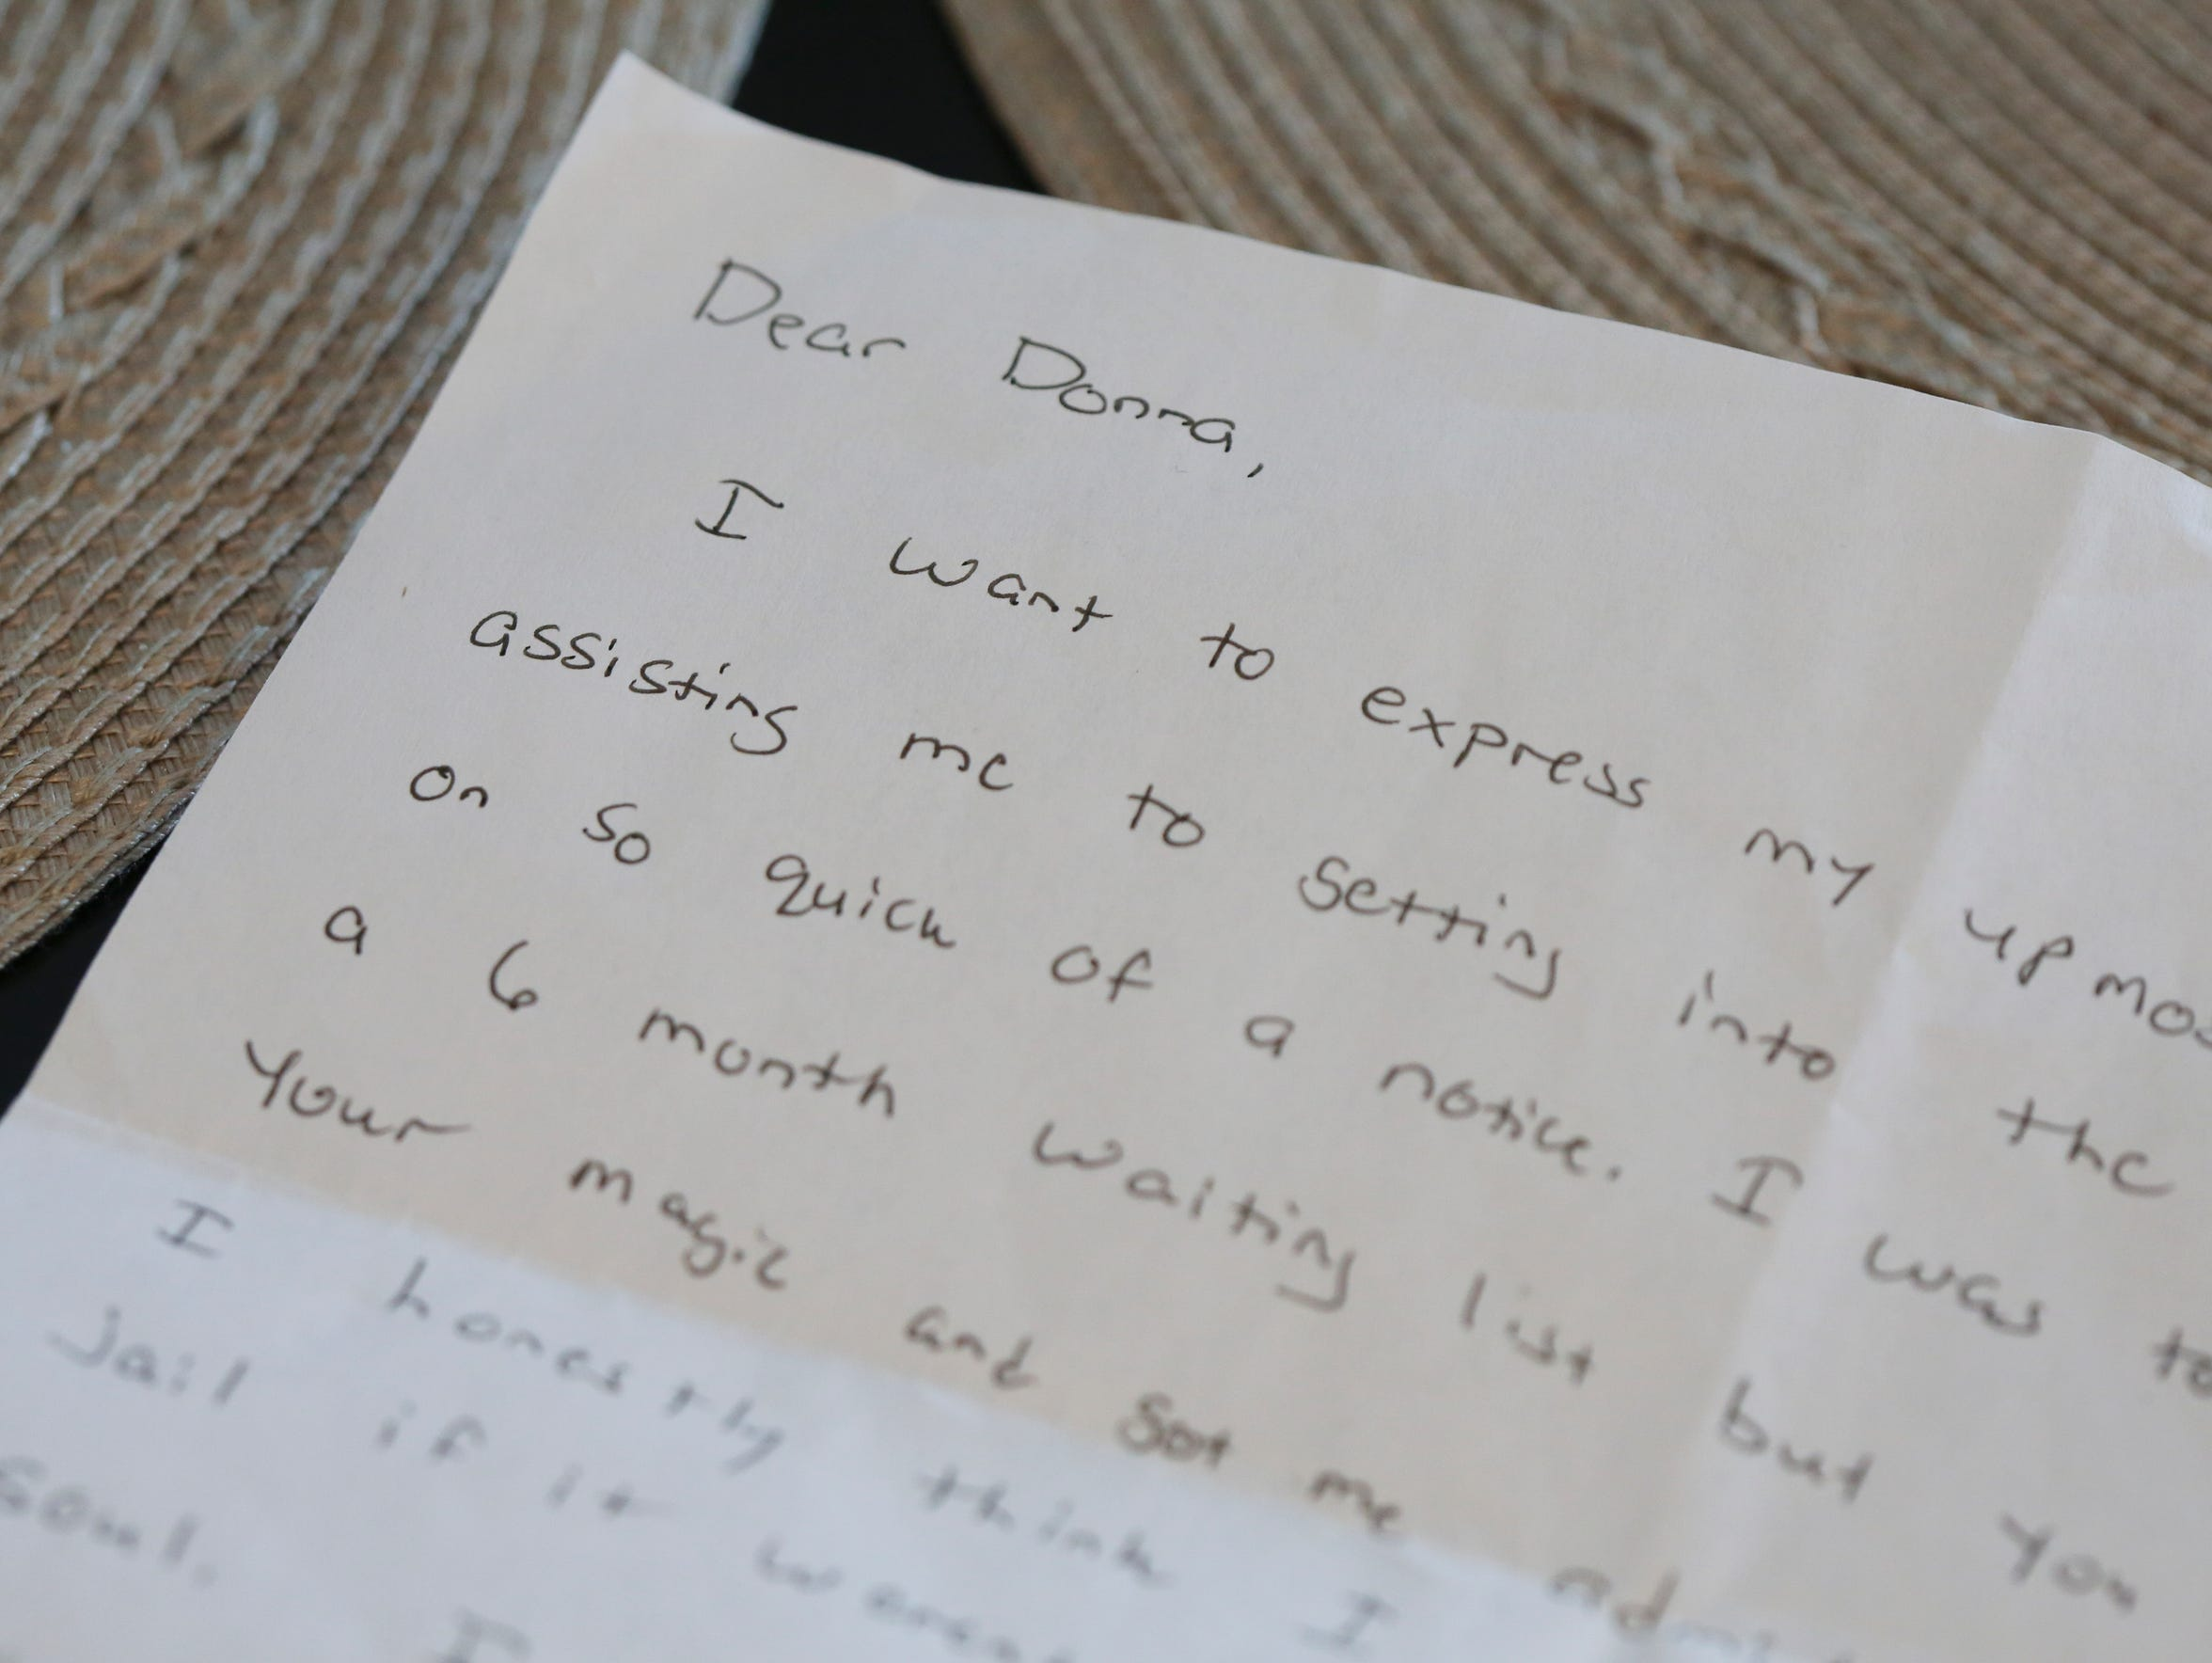 Karl Cooley and Brenda Cooley keep a letter written